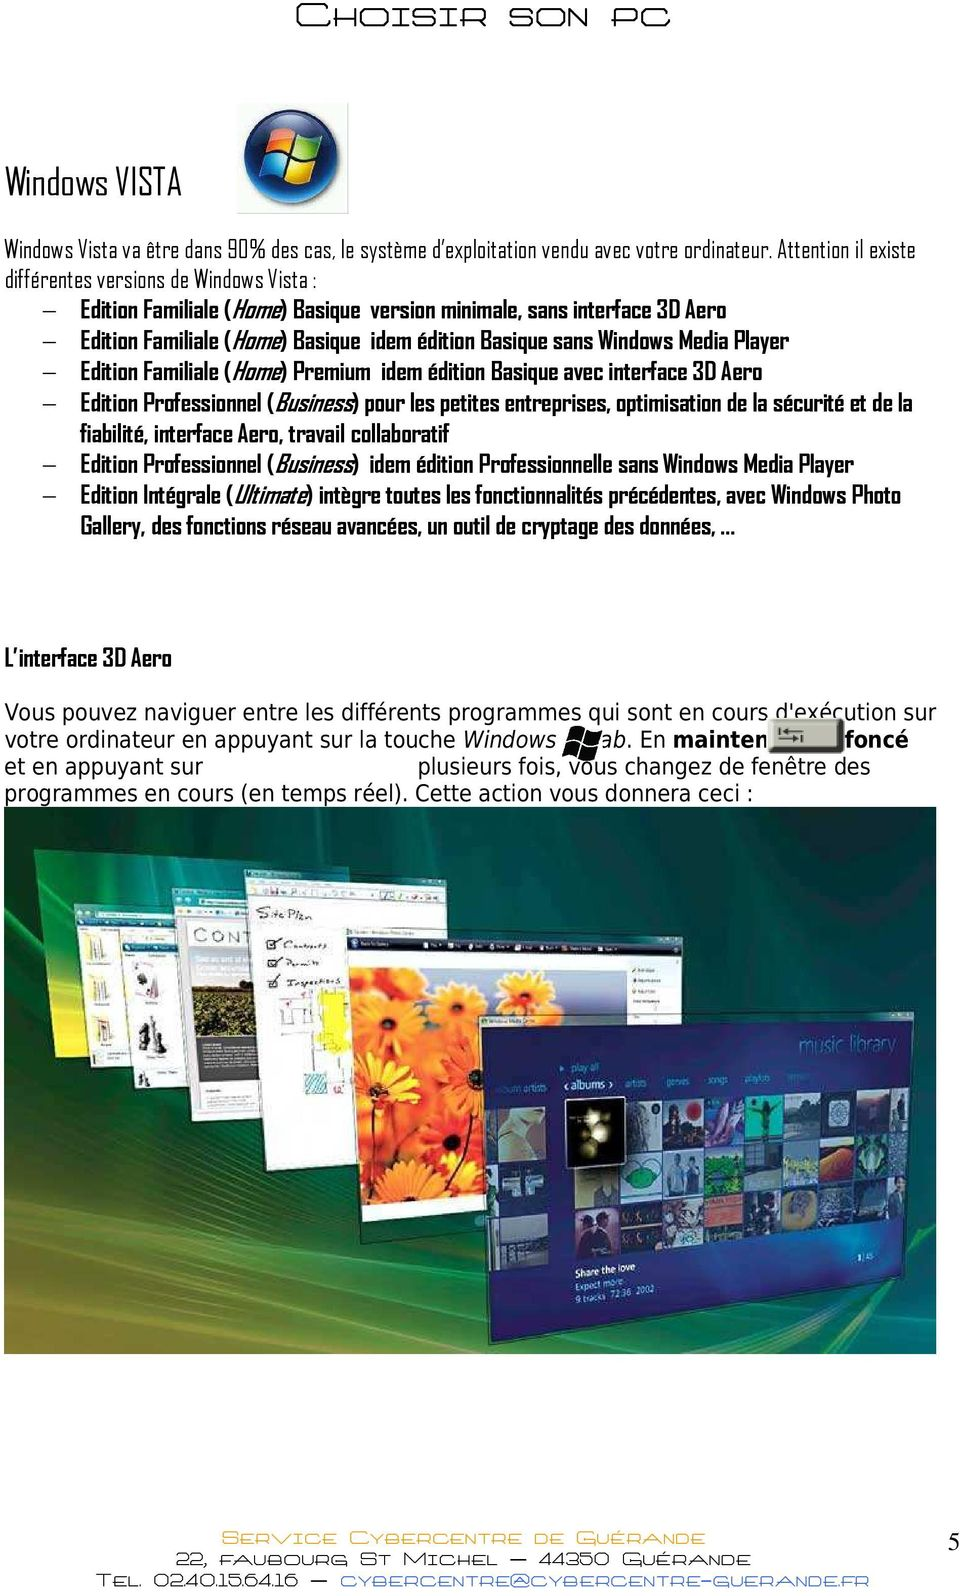 Windows Media Player Edition Familiale (Home) Premium idem édition Basique avec interface 3D Aero Edition Professionnel (Business) pour les petites entreprises, optimisation de la sécurité et de la